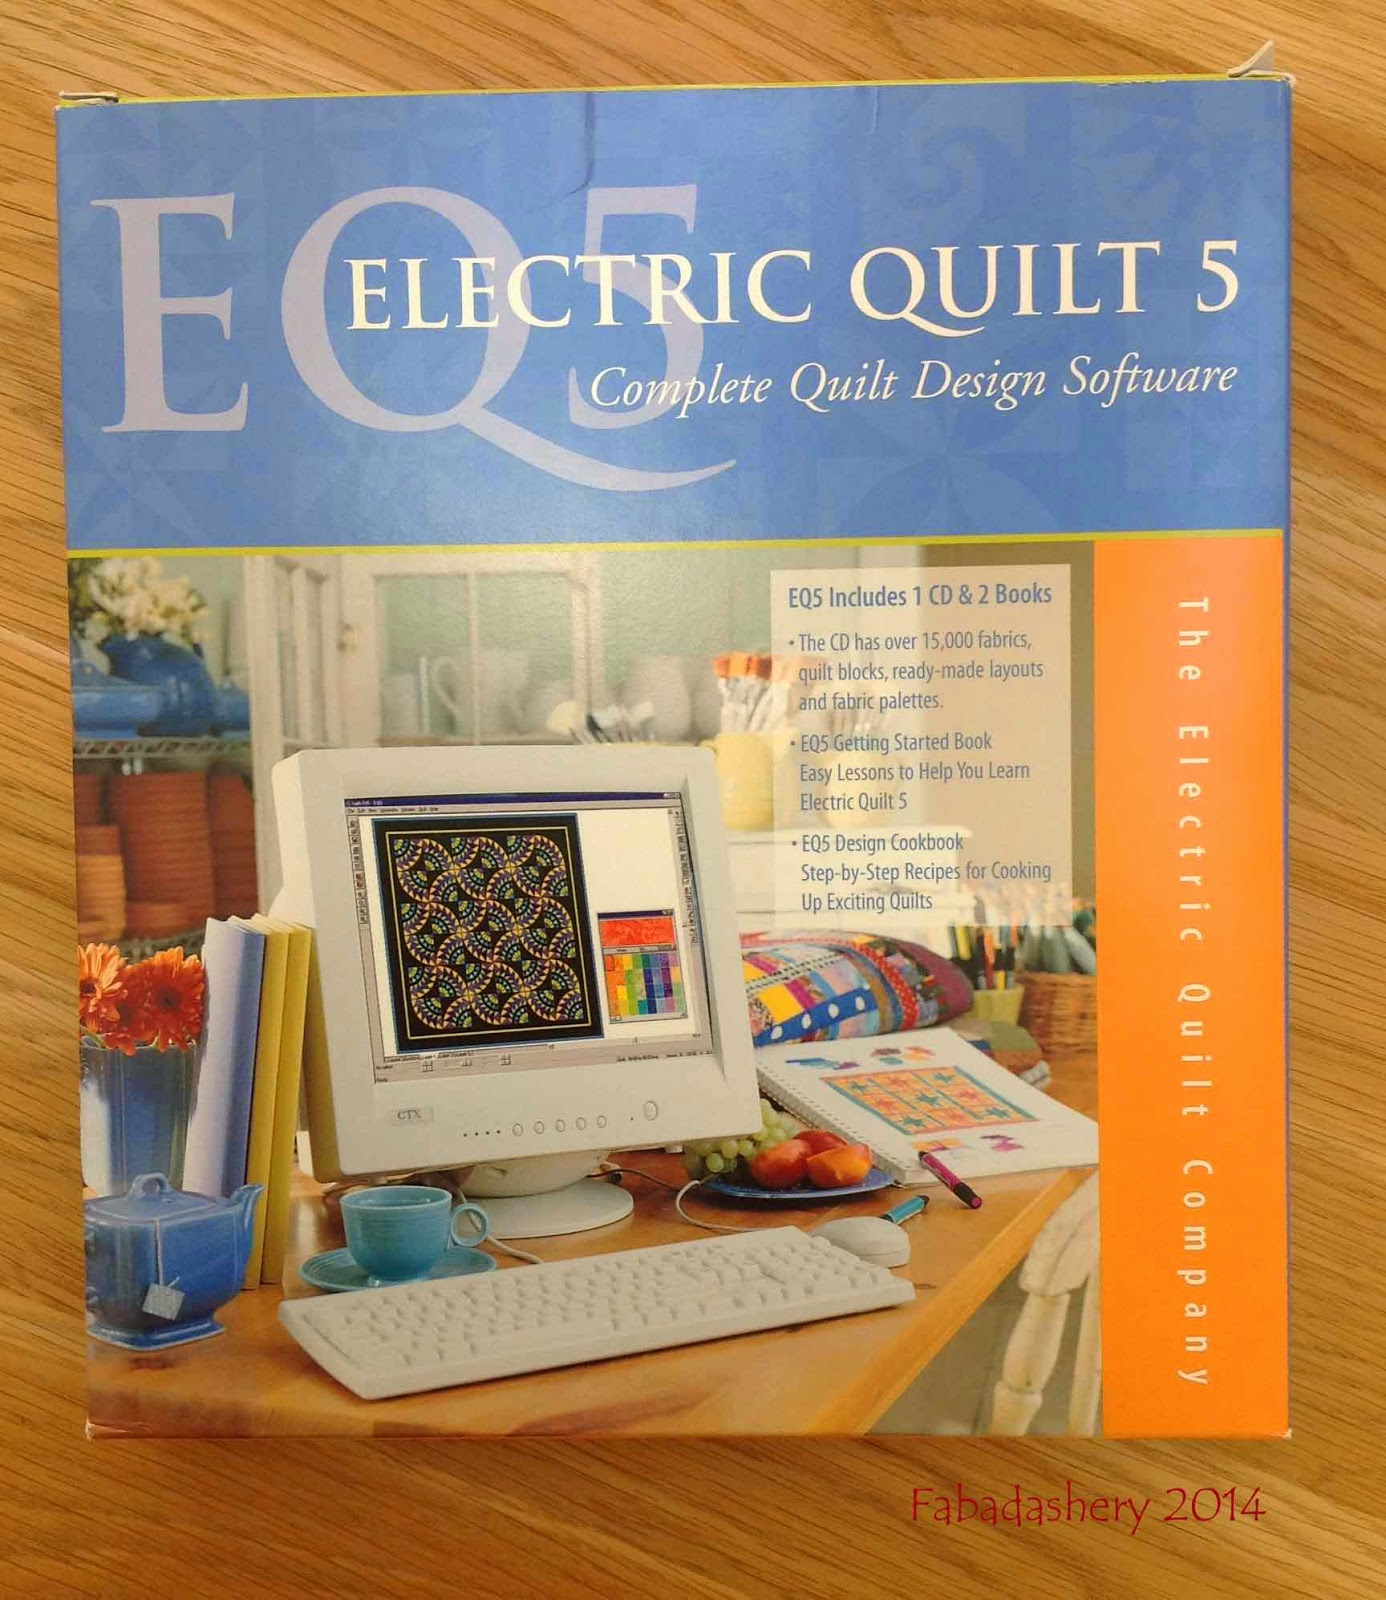 Electric Quilt 5 Software